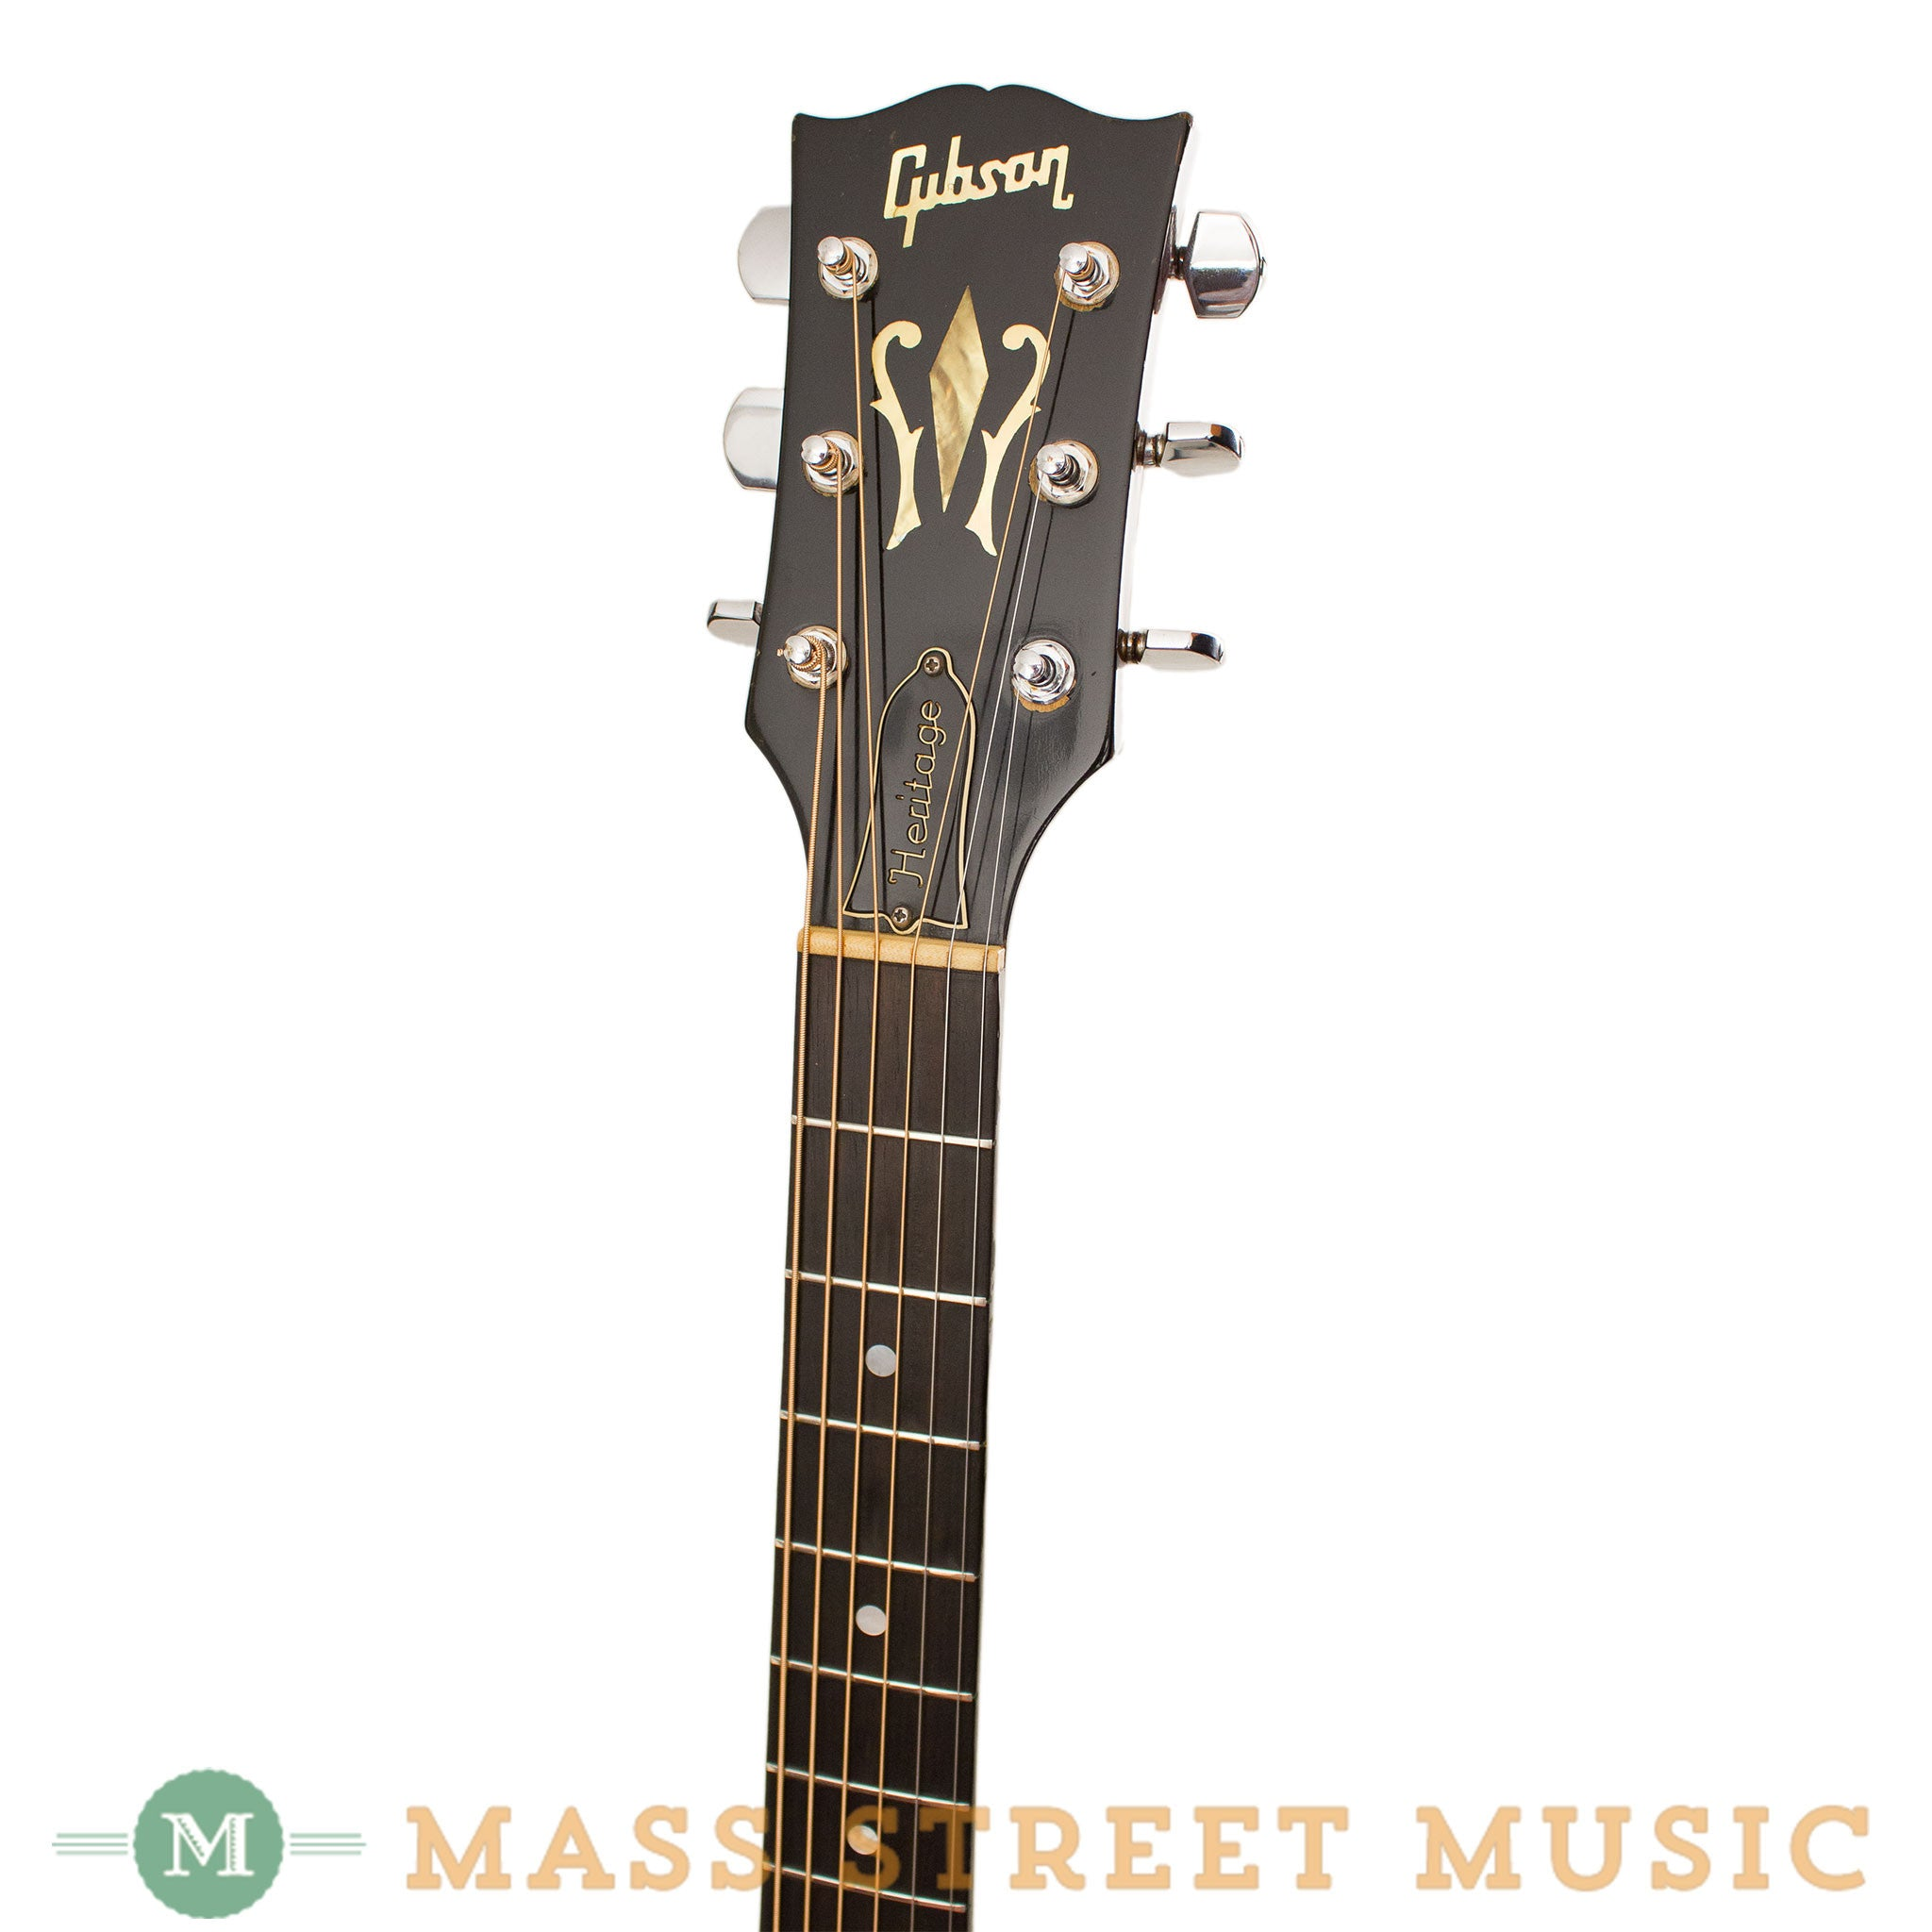 Gibson Acoustic Guitars - 1968 Heritage Used